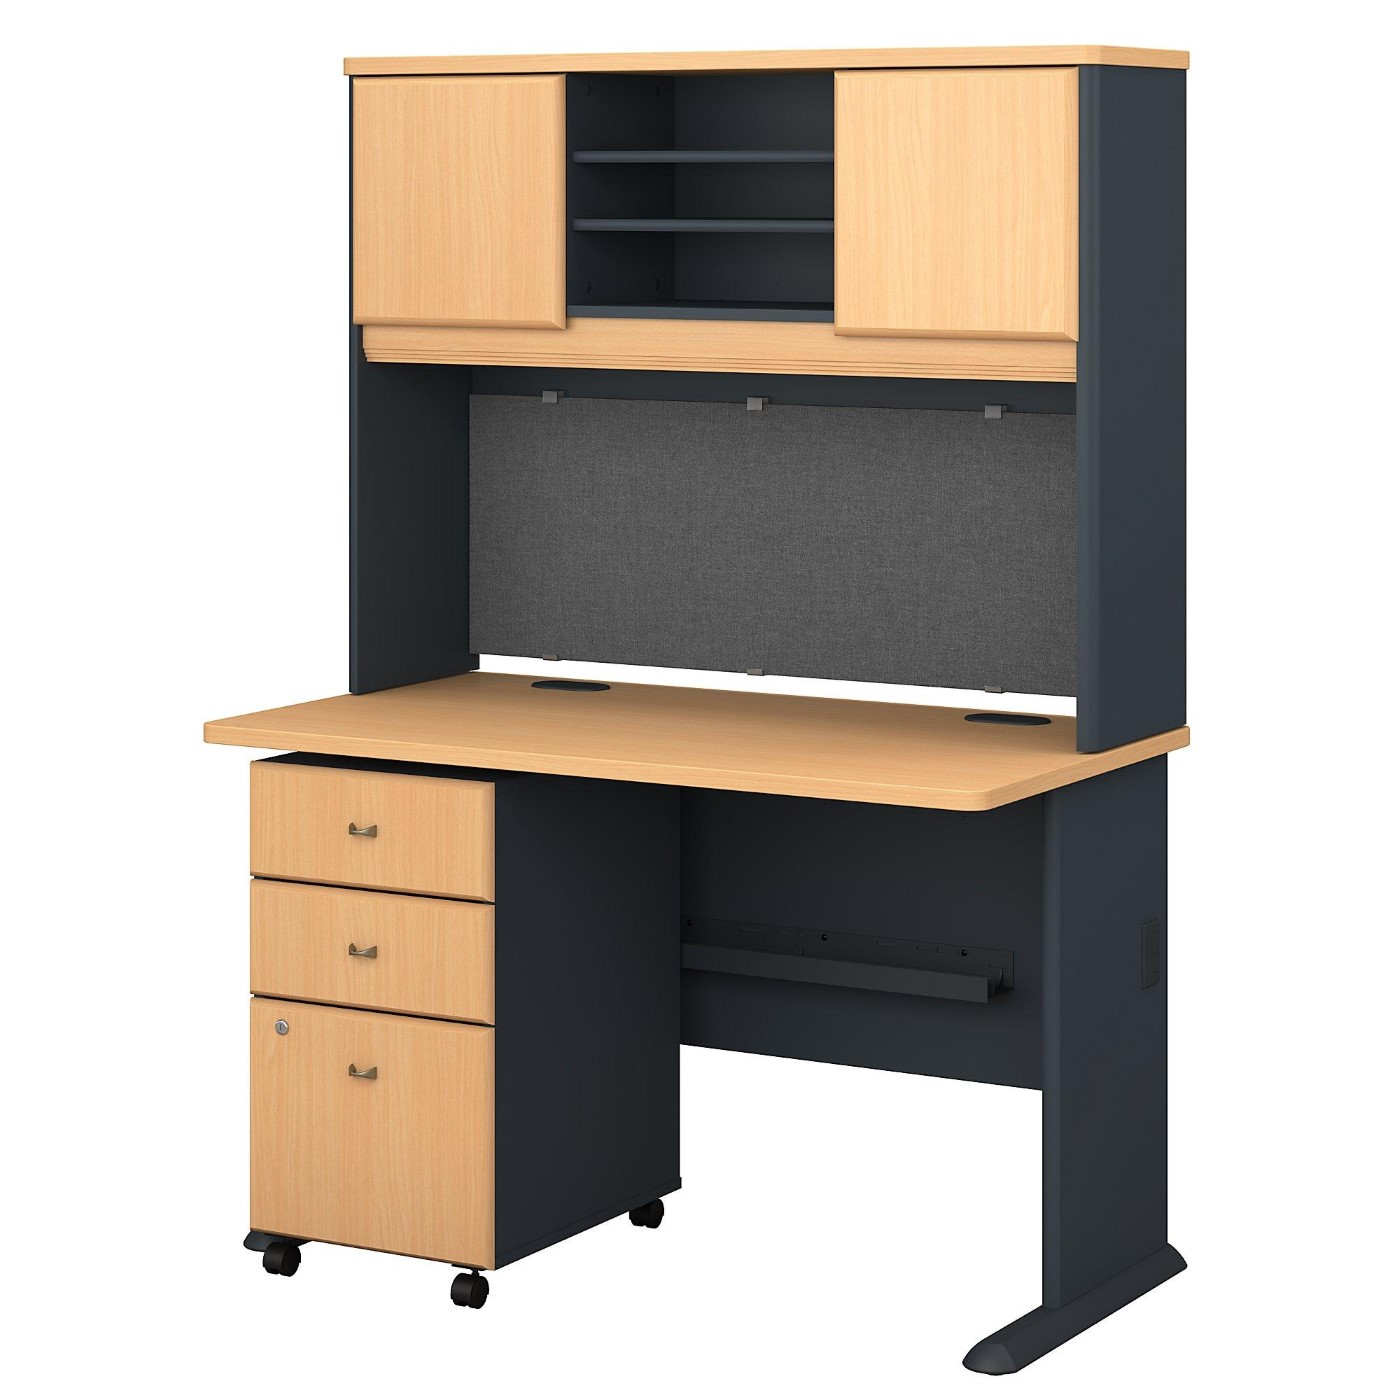 <font color=#c60><b>BUSH BUSINESS FURNITURE SERIES A 48W DESK WITH HUTCH AND MOBILE FILE CABINET. FREE SHIPPING</font></b></font>